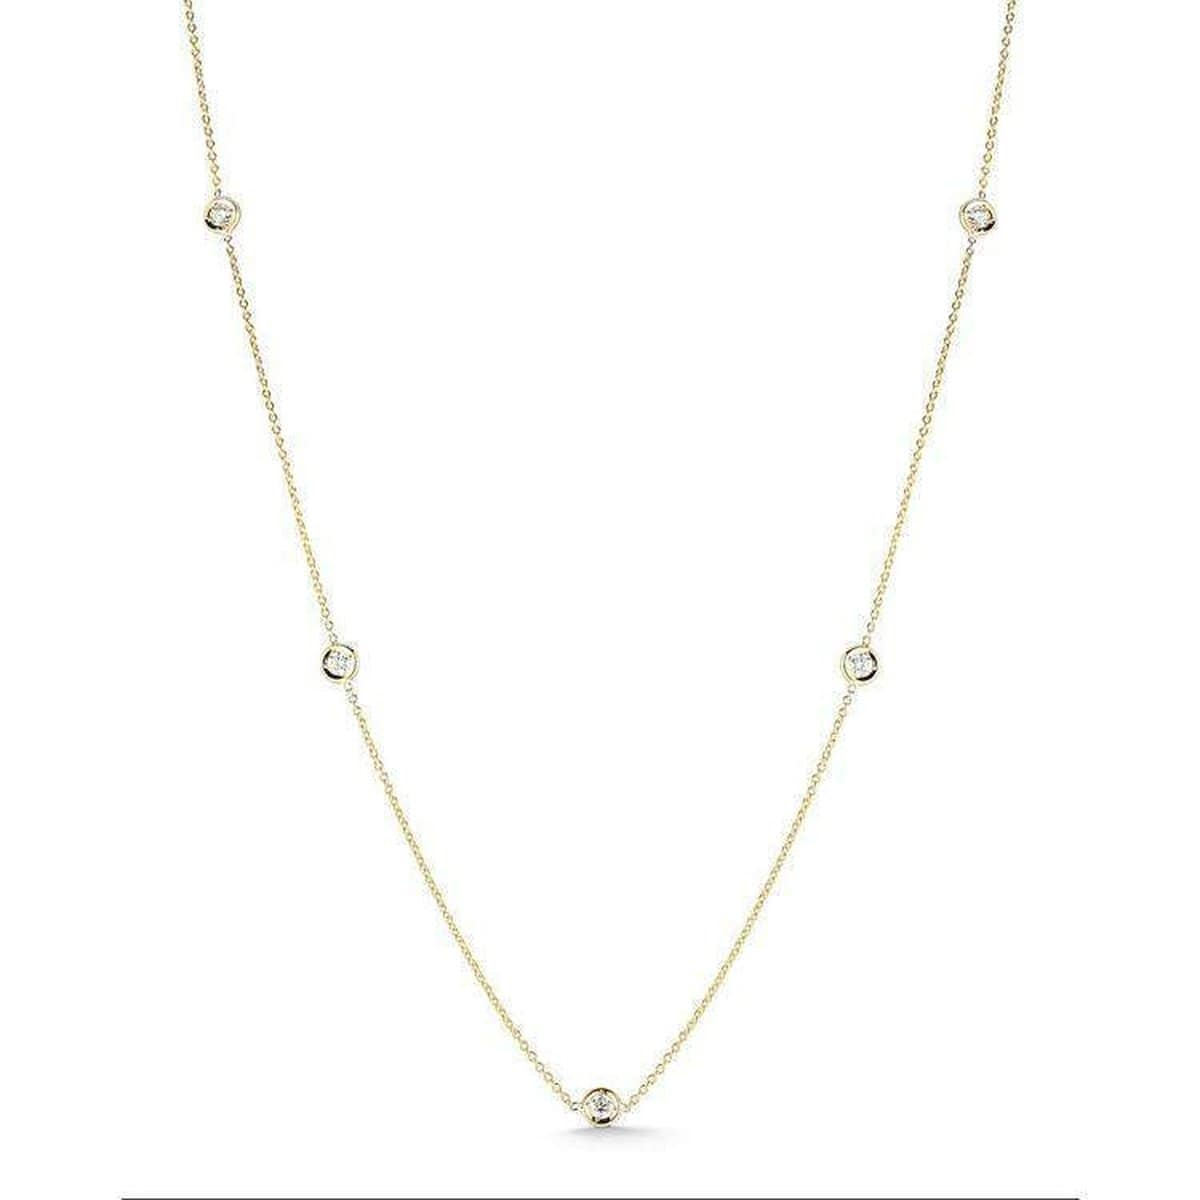 18k Yellow Gold & Diamond 5 Station Necklace - 001316AYCHD0-Roberto Coin-Renee Taylor Gallery